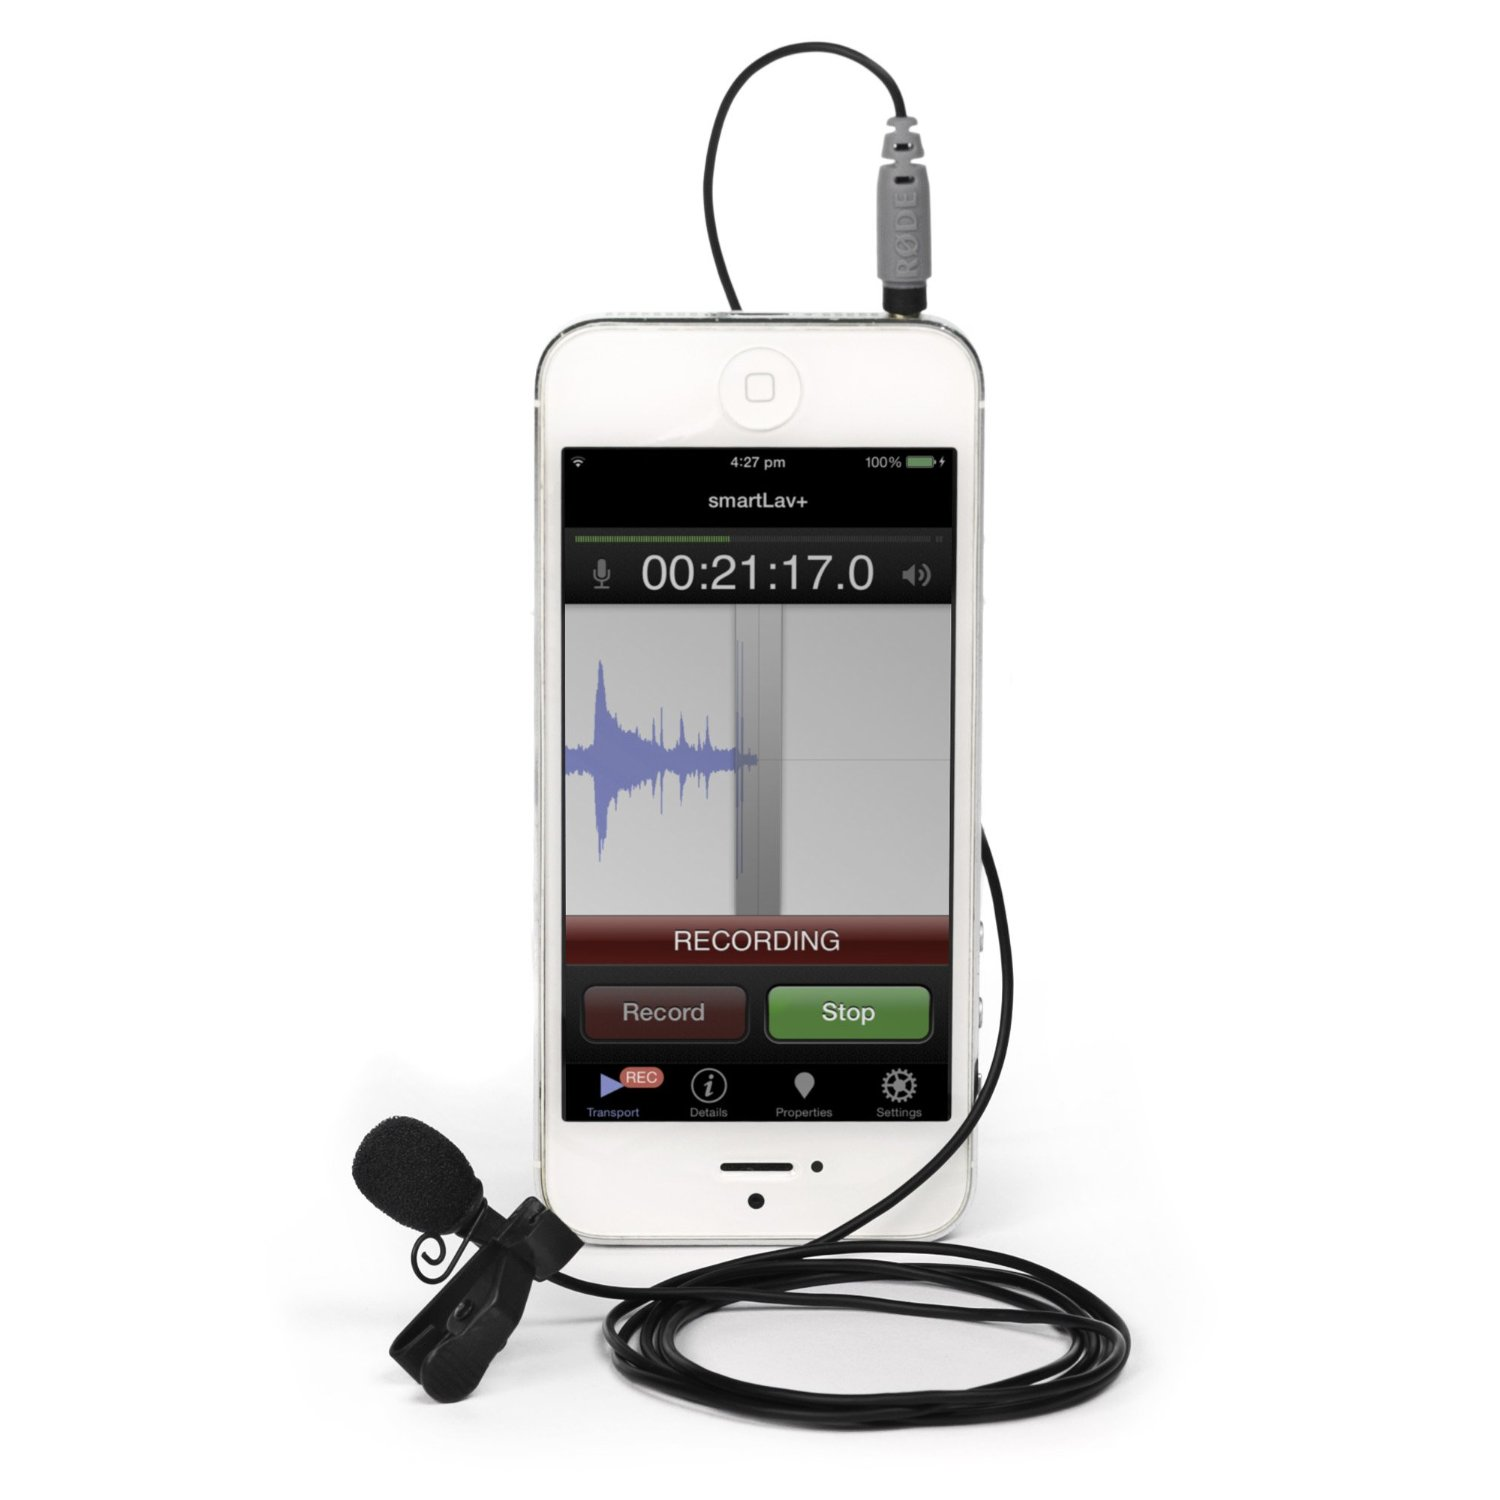 Best Lavalier Microphone For Iphone